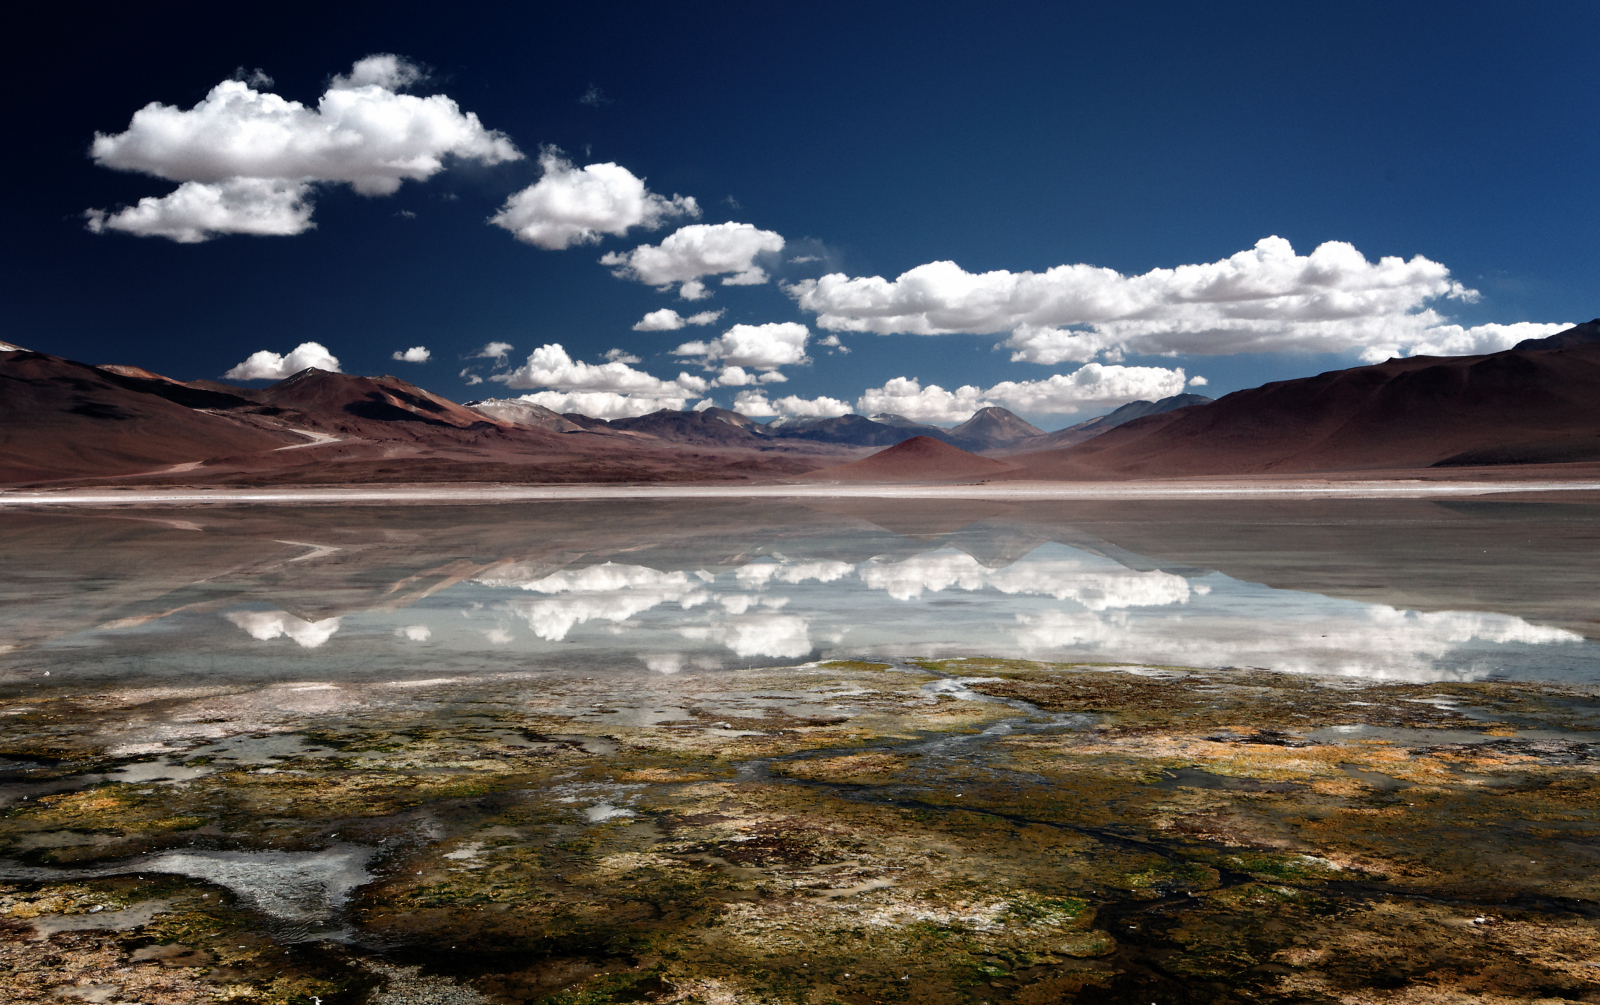 The Laguna Verde in southwestern Bolivia. By Mike Green.